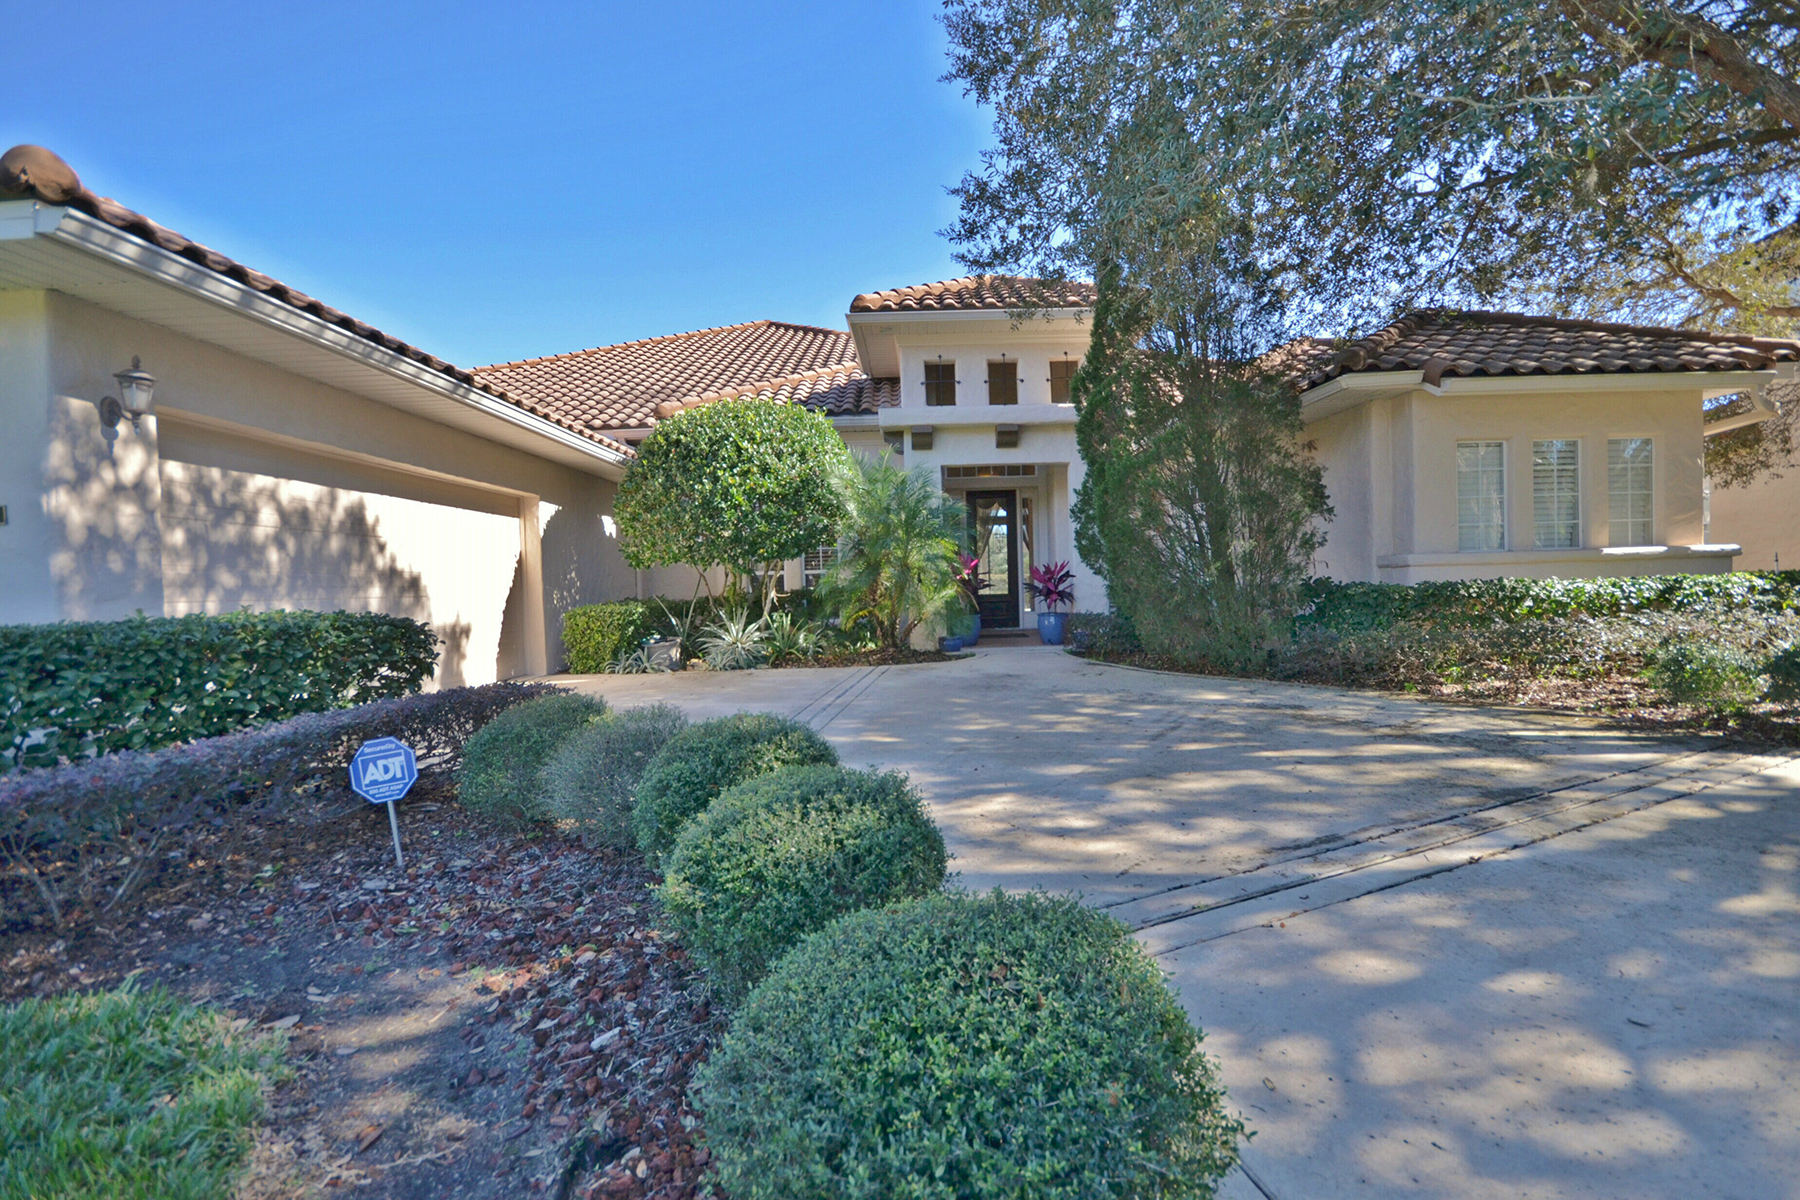 Single Family Home for Sale at 117 Overoaks Pl , Sanford, FL 32771 117 Overoaks Pl Sanford, Florida, 32771 United States